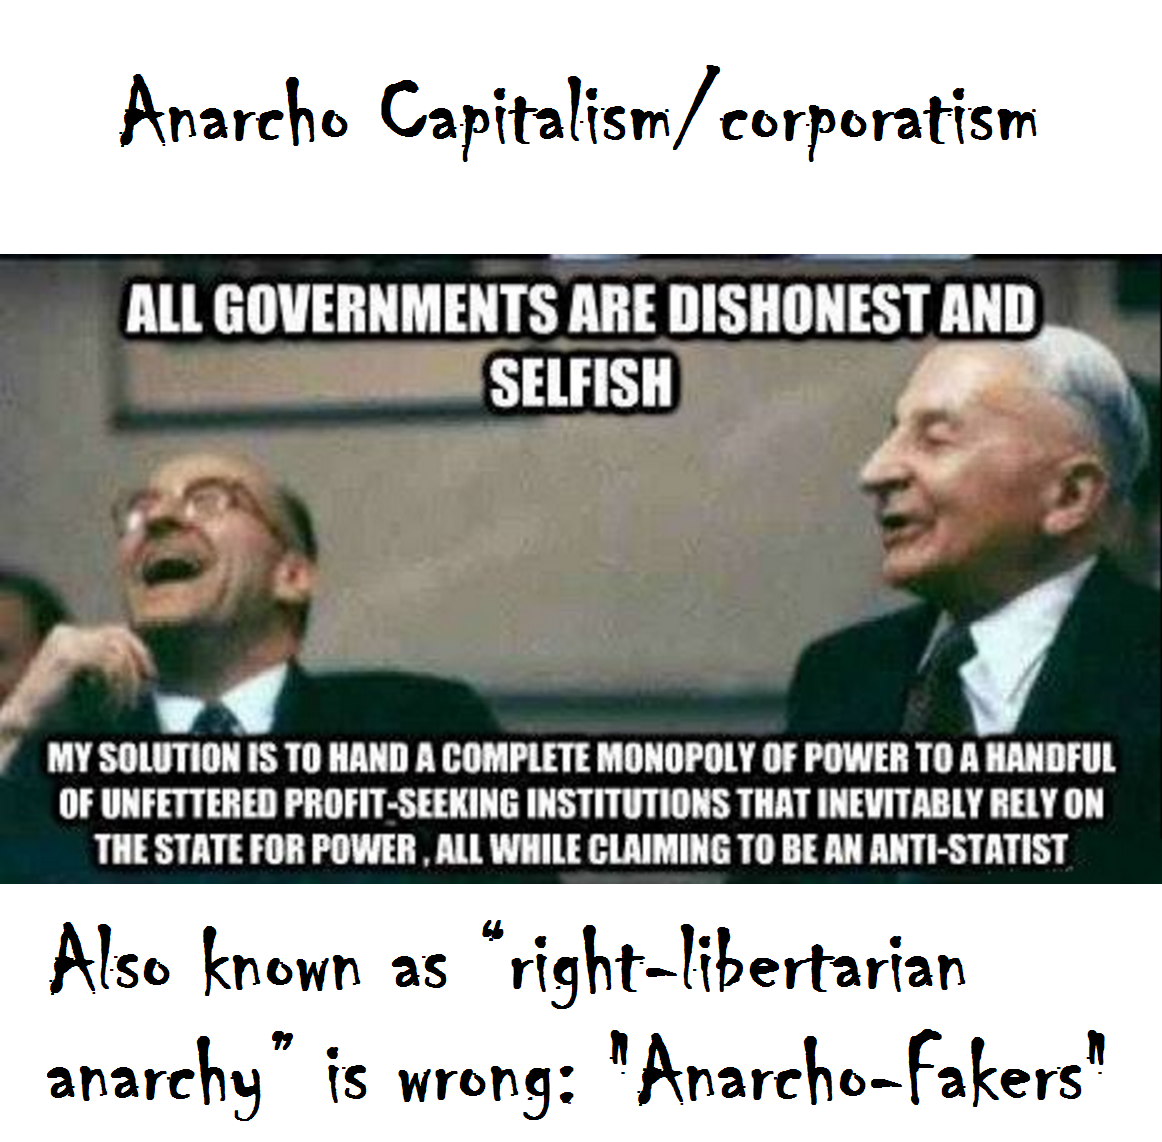 criticizing communism Orwell's critique of socialism is the most obvious in the story, with the animals attempting a communist-style society in the farm and slowly failing as napoleon takes over as a dictator.